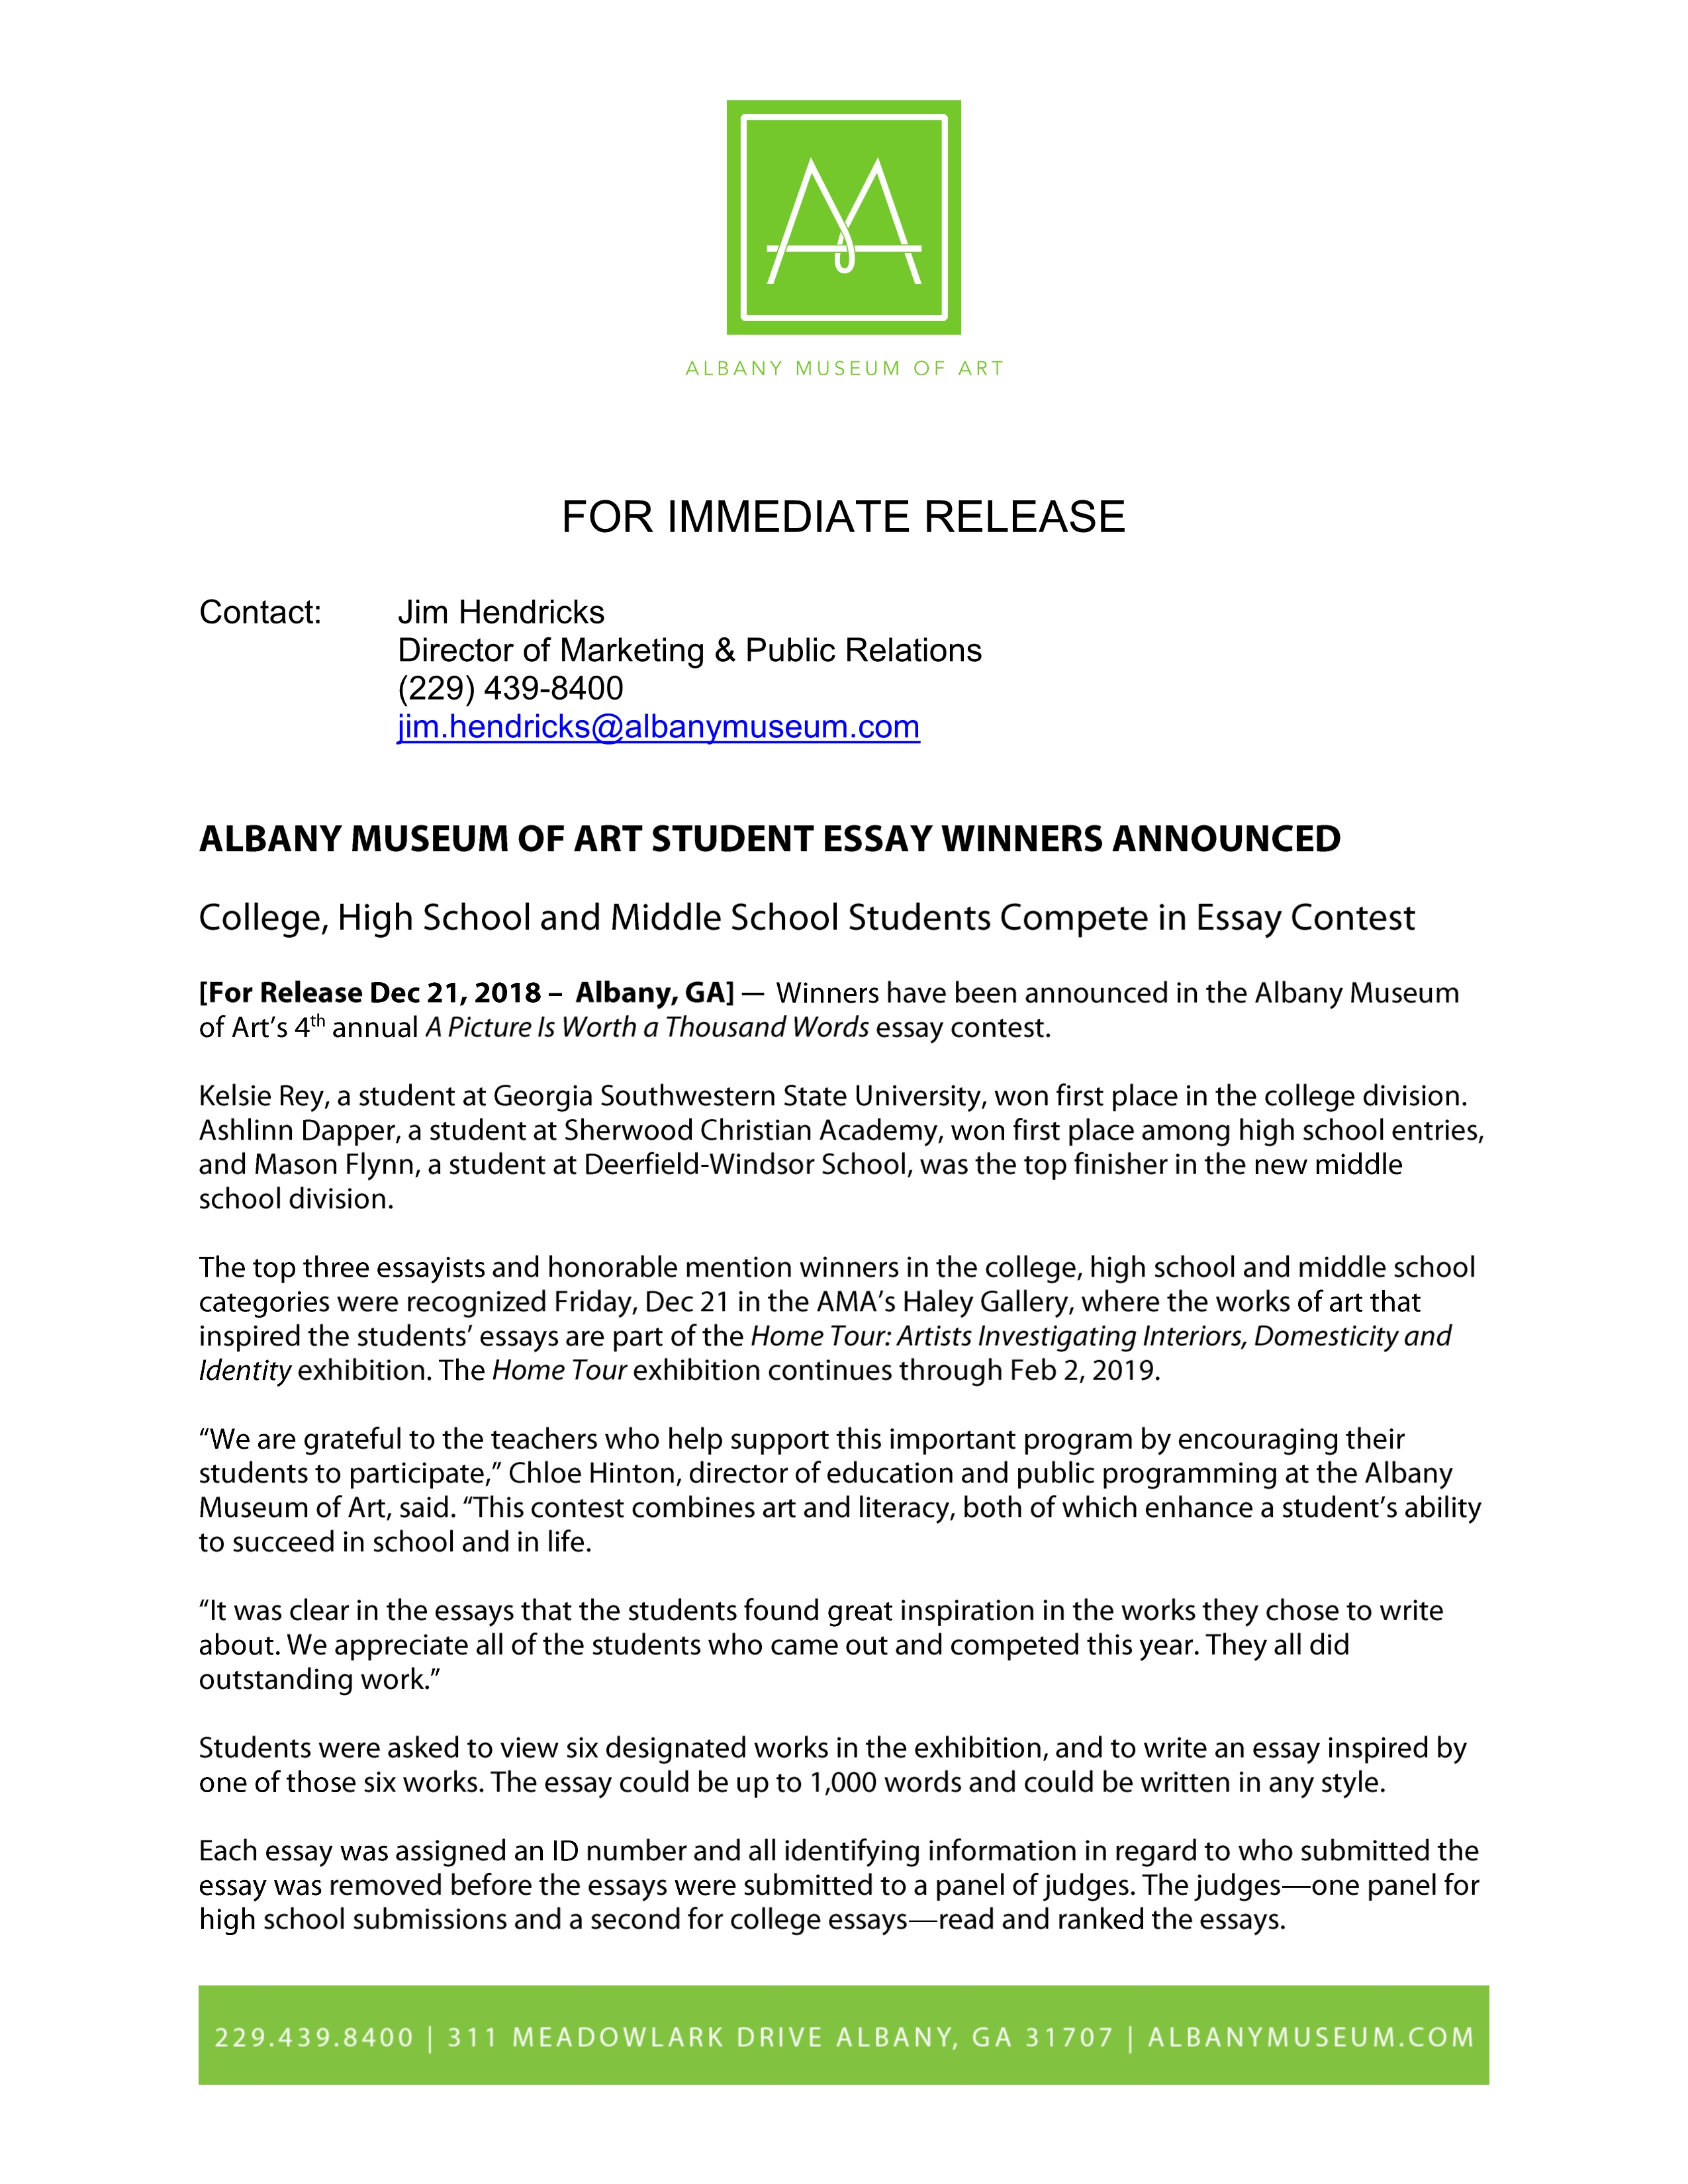 Albany Museum Of Art Student Essay Winners Announced  Albany Area  Albany Museum Of Art Student Essay Winners Announced